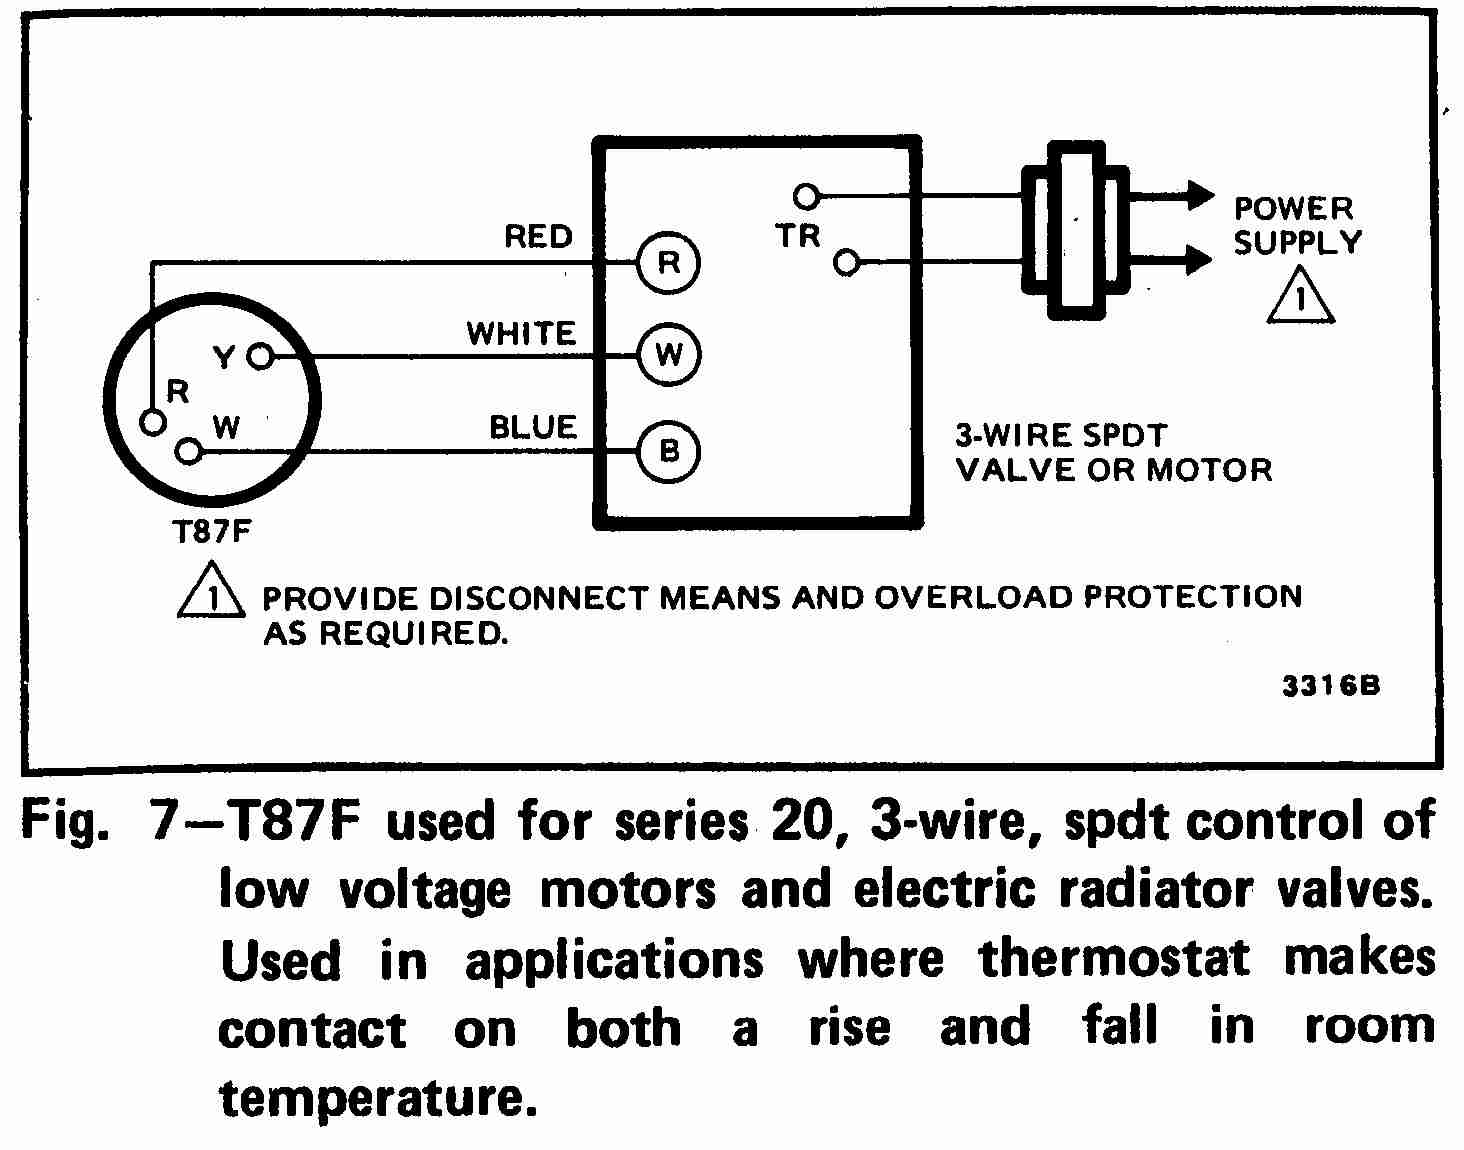 TT_T87F_0002_3W2_DJF room thermostat wiring diagrams for hvac systems fcu wiring diagram at sewacar.co